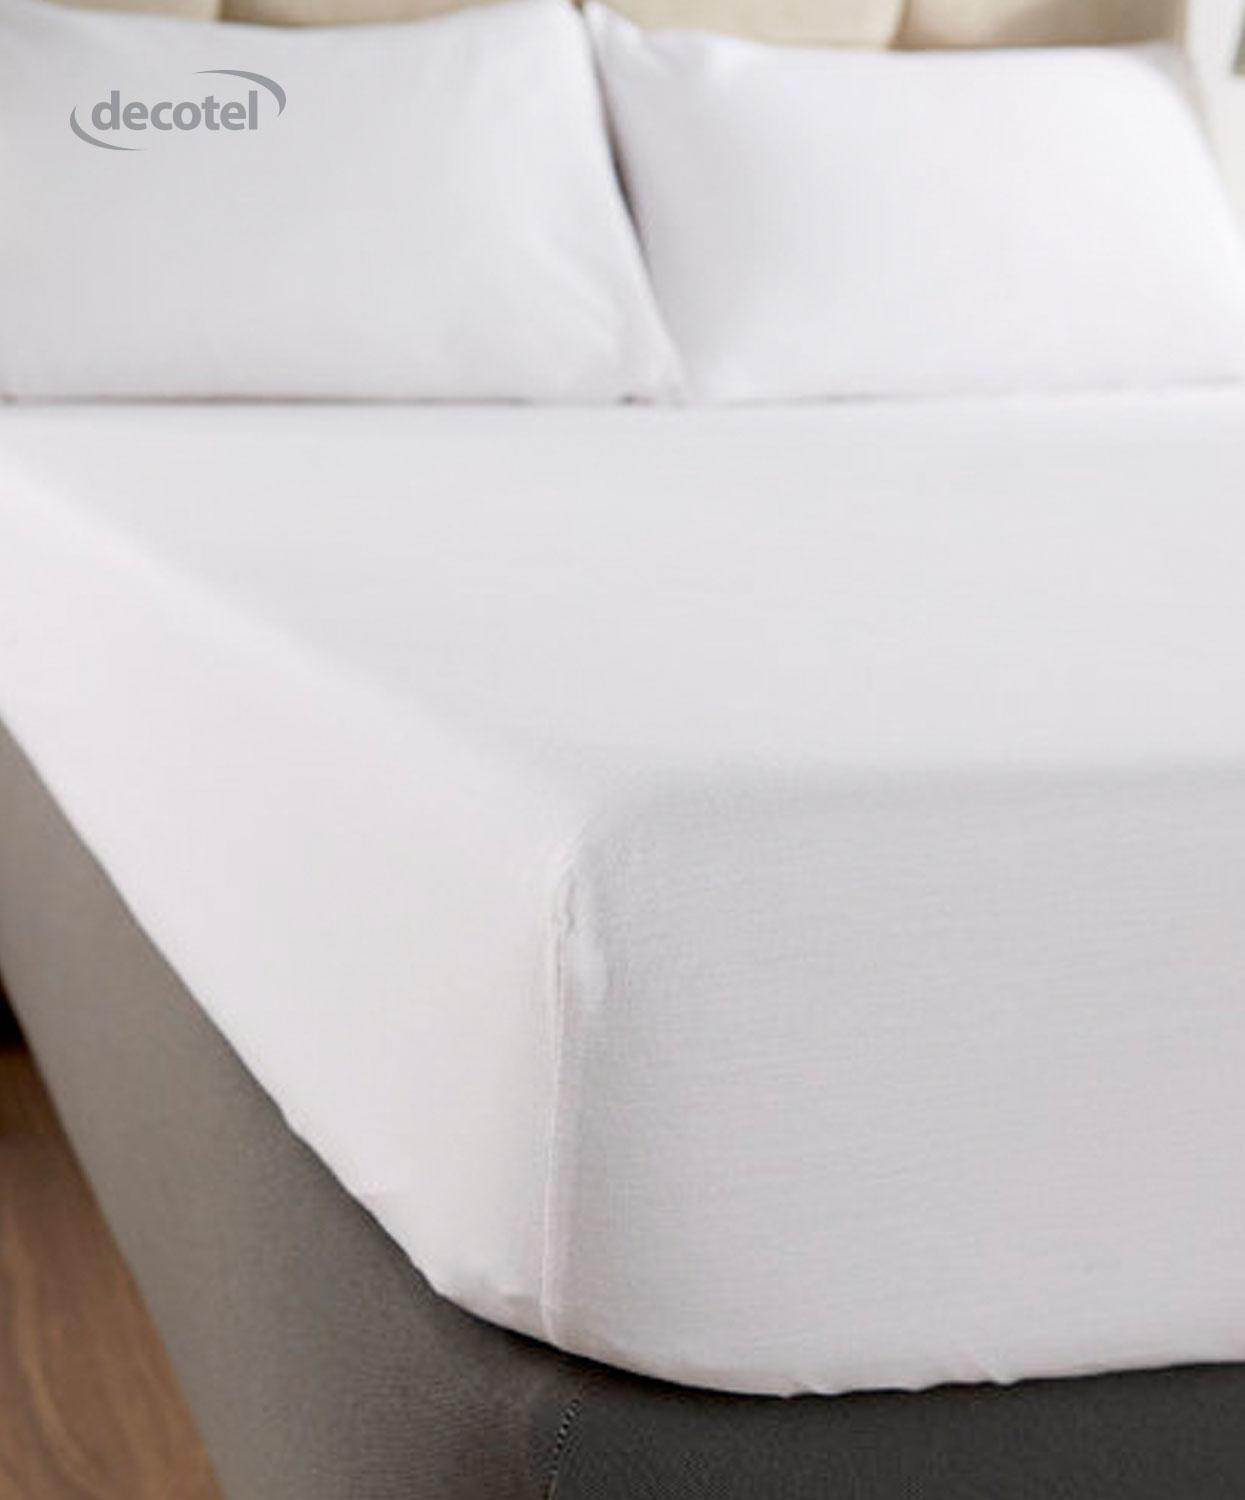 Knightsbridge flat bed sheets